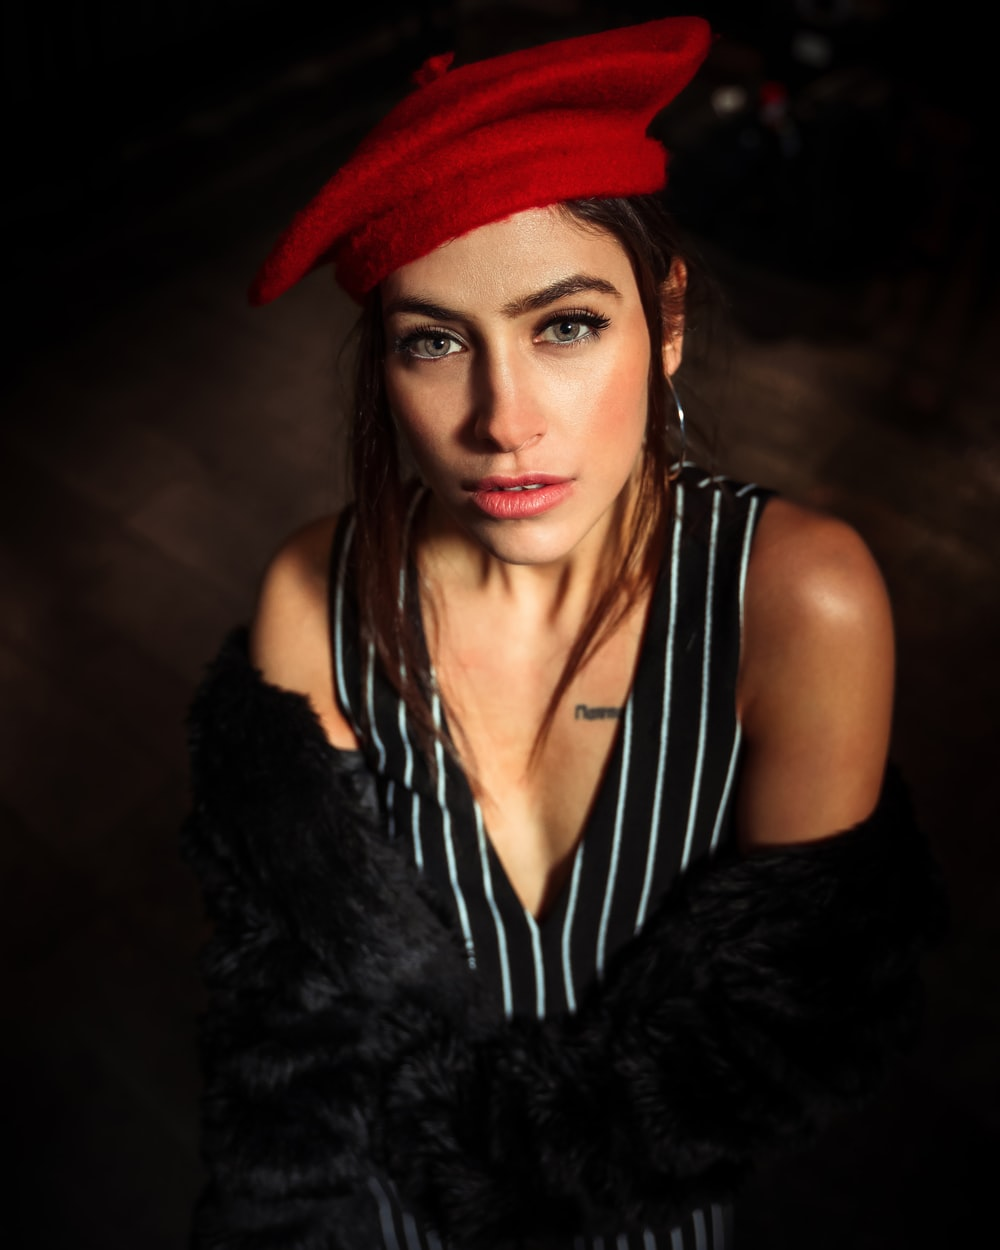 woman in black fur vest and red hat